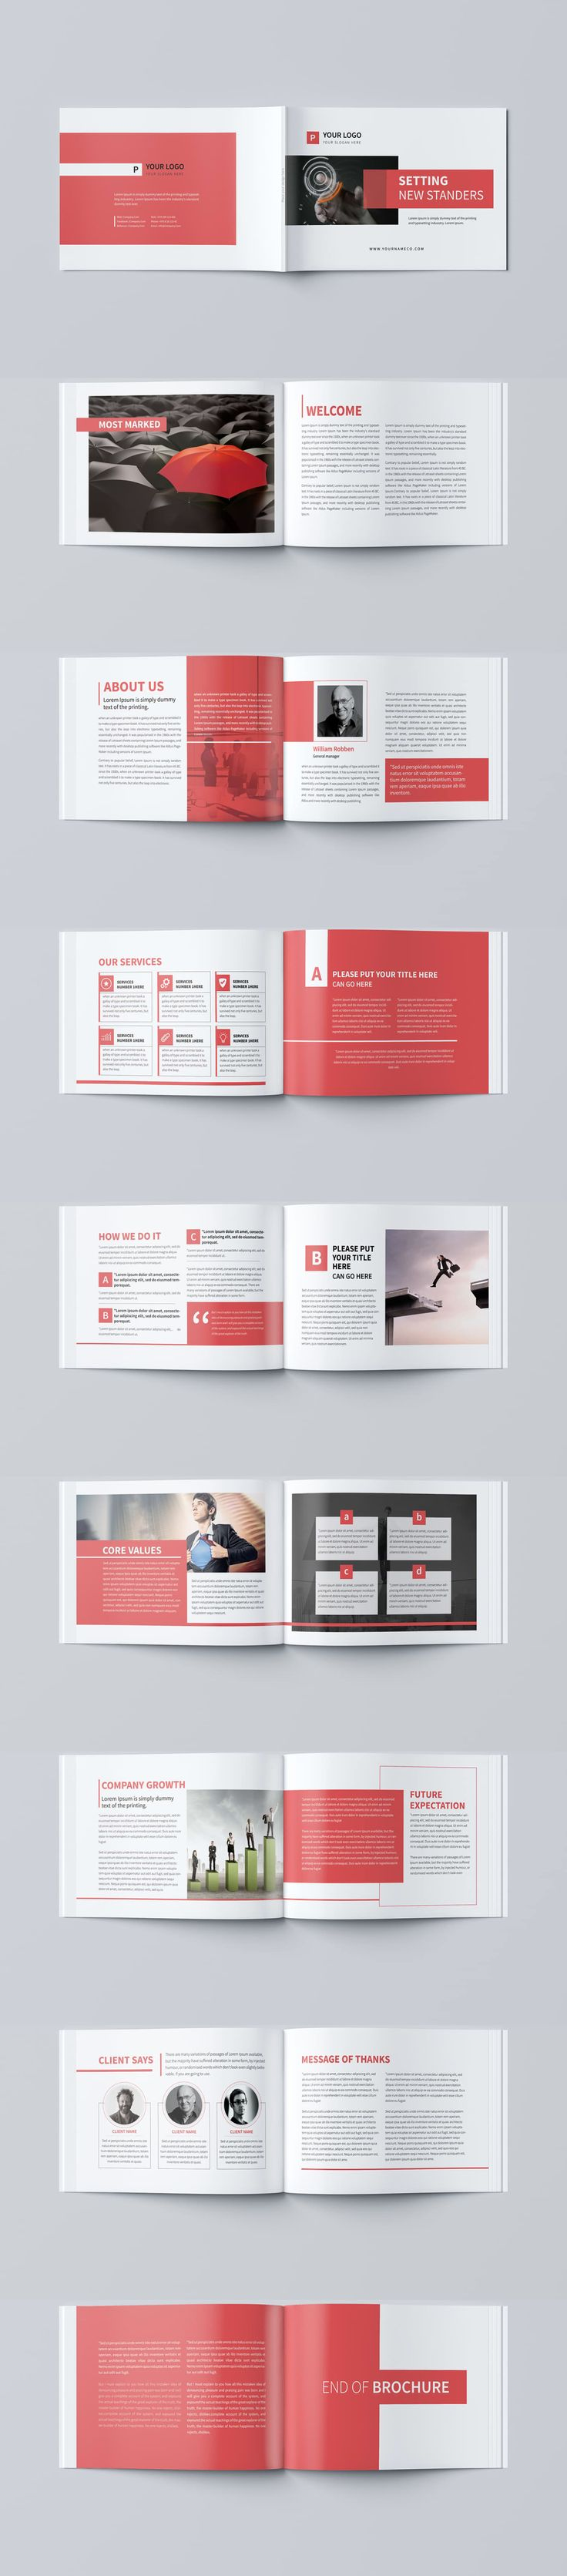 minimal business brochure template psd